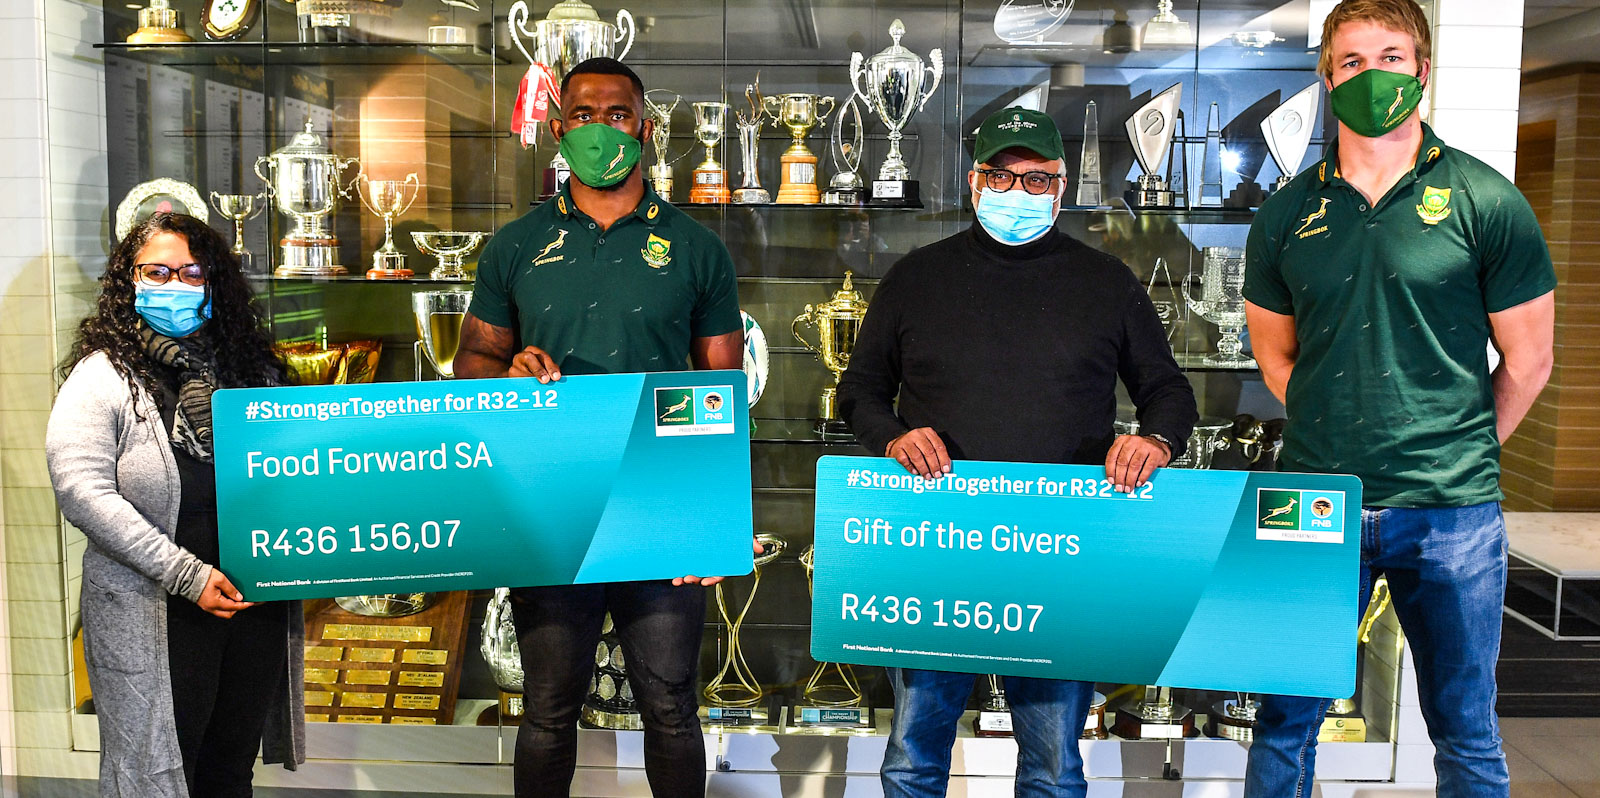 Siya Kolisi and Pieter-Steph du Toit hand over the money raised during the #StrongerTogether for R32-12 campaign